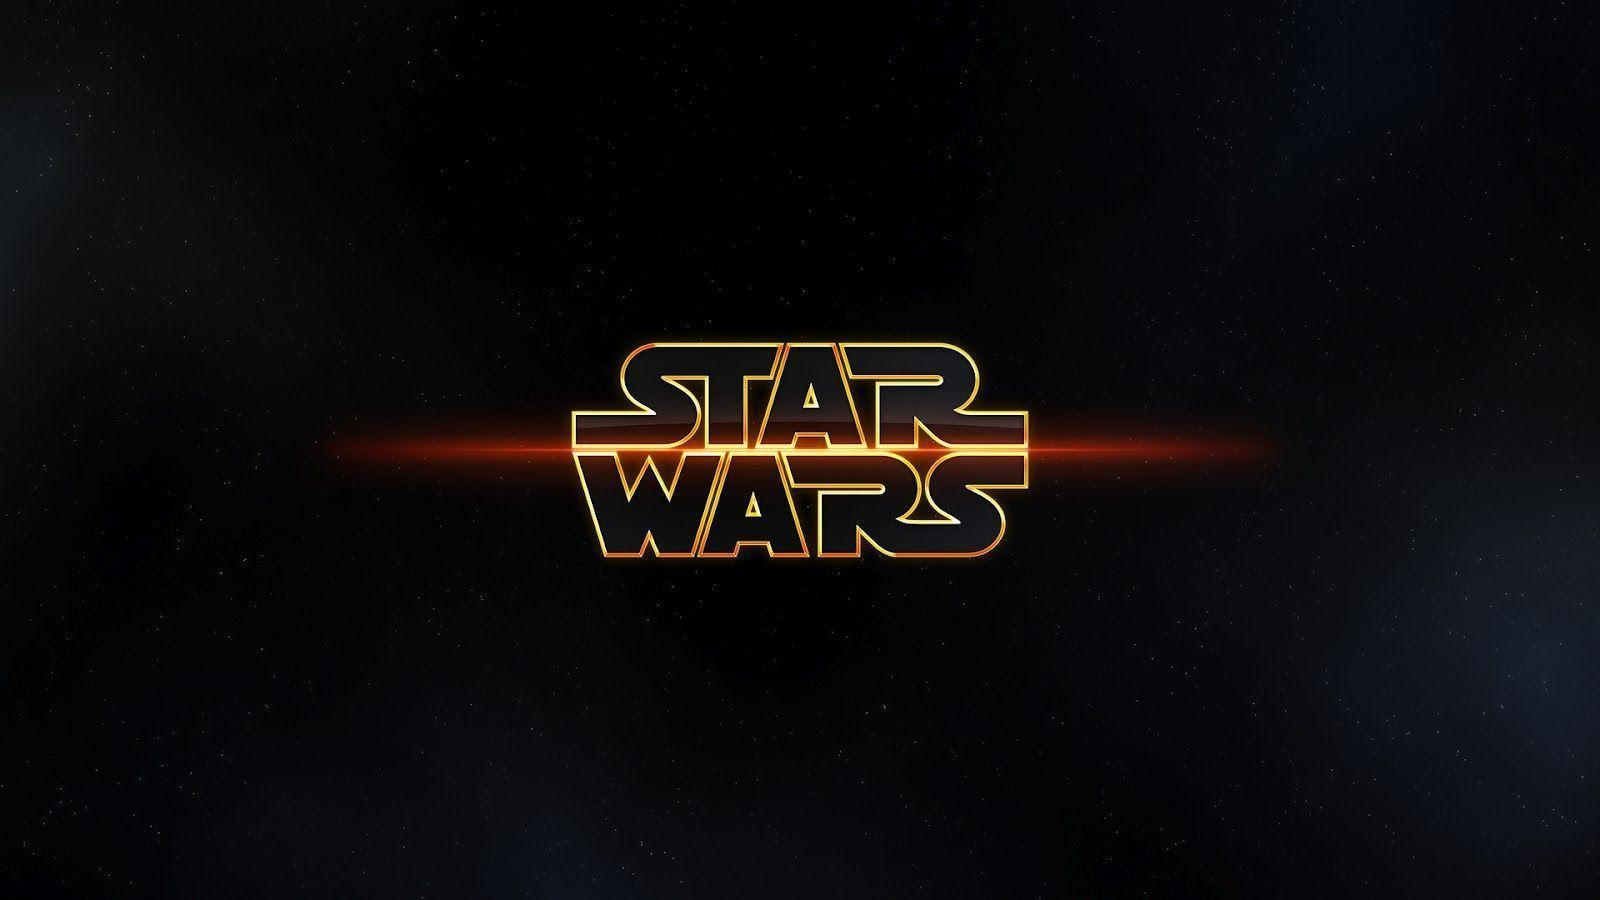 Star Wars Wallpapers 1920x1080